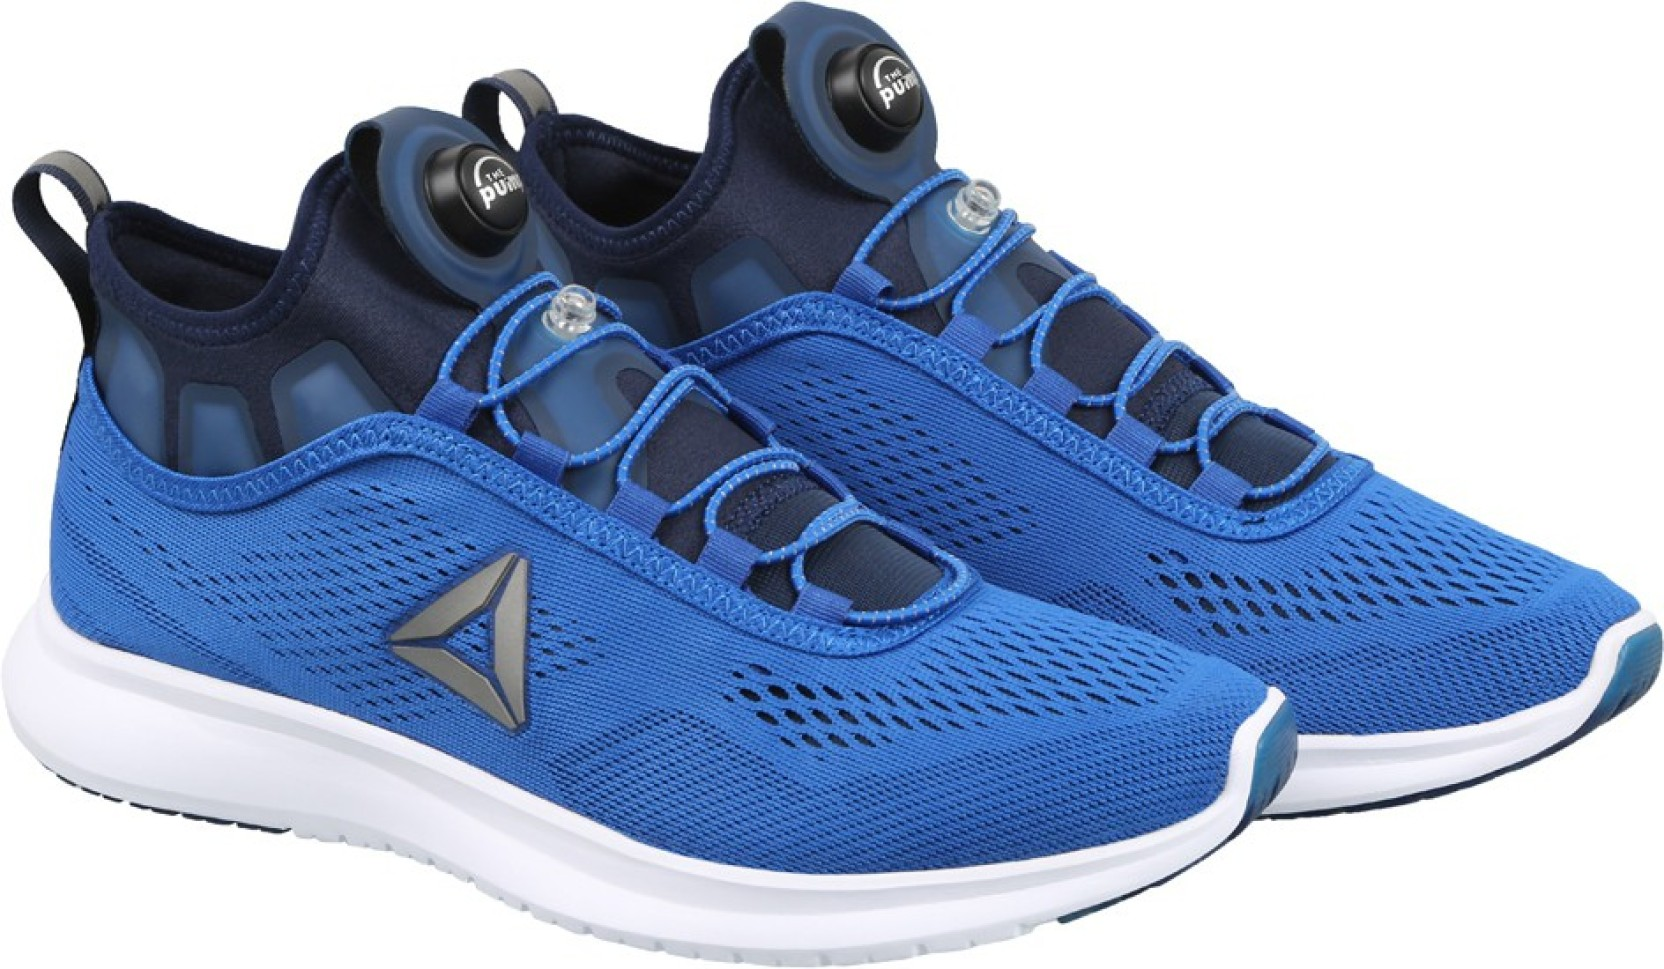 56c50d634 REEBOK PUMP PLUS TECH Running Shoes For Men - Buy AWESOME BLUE NAVY ...